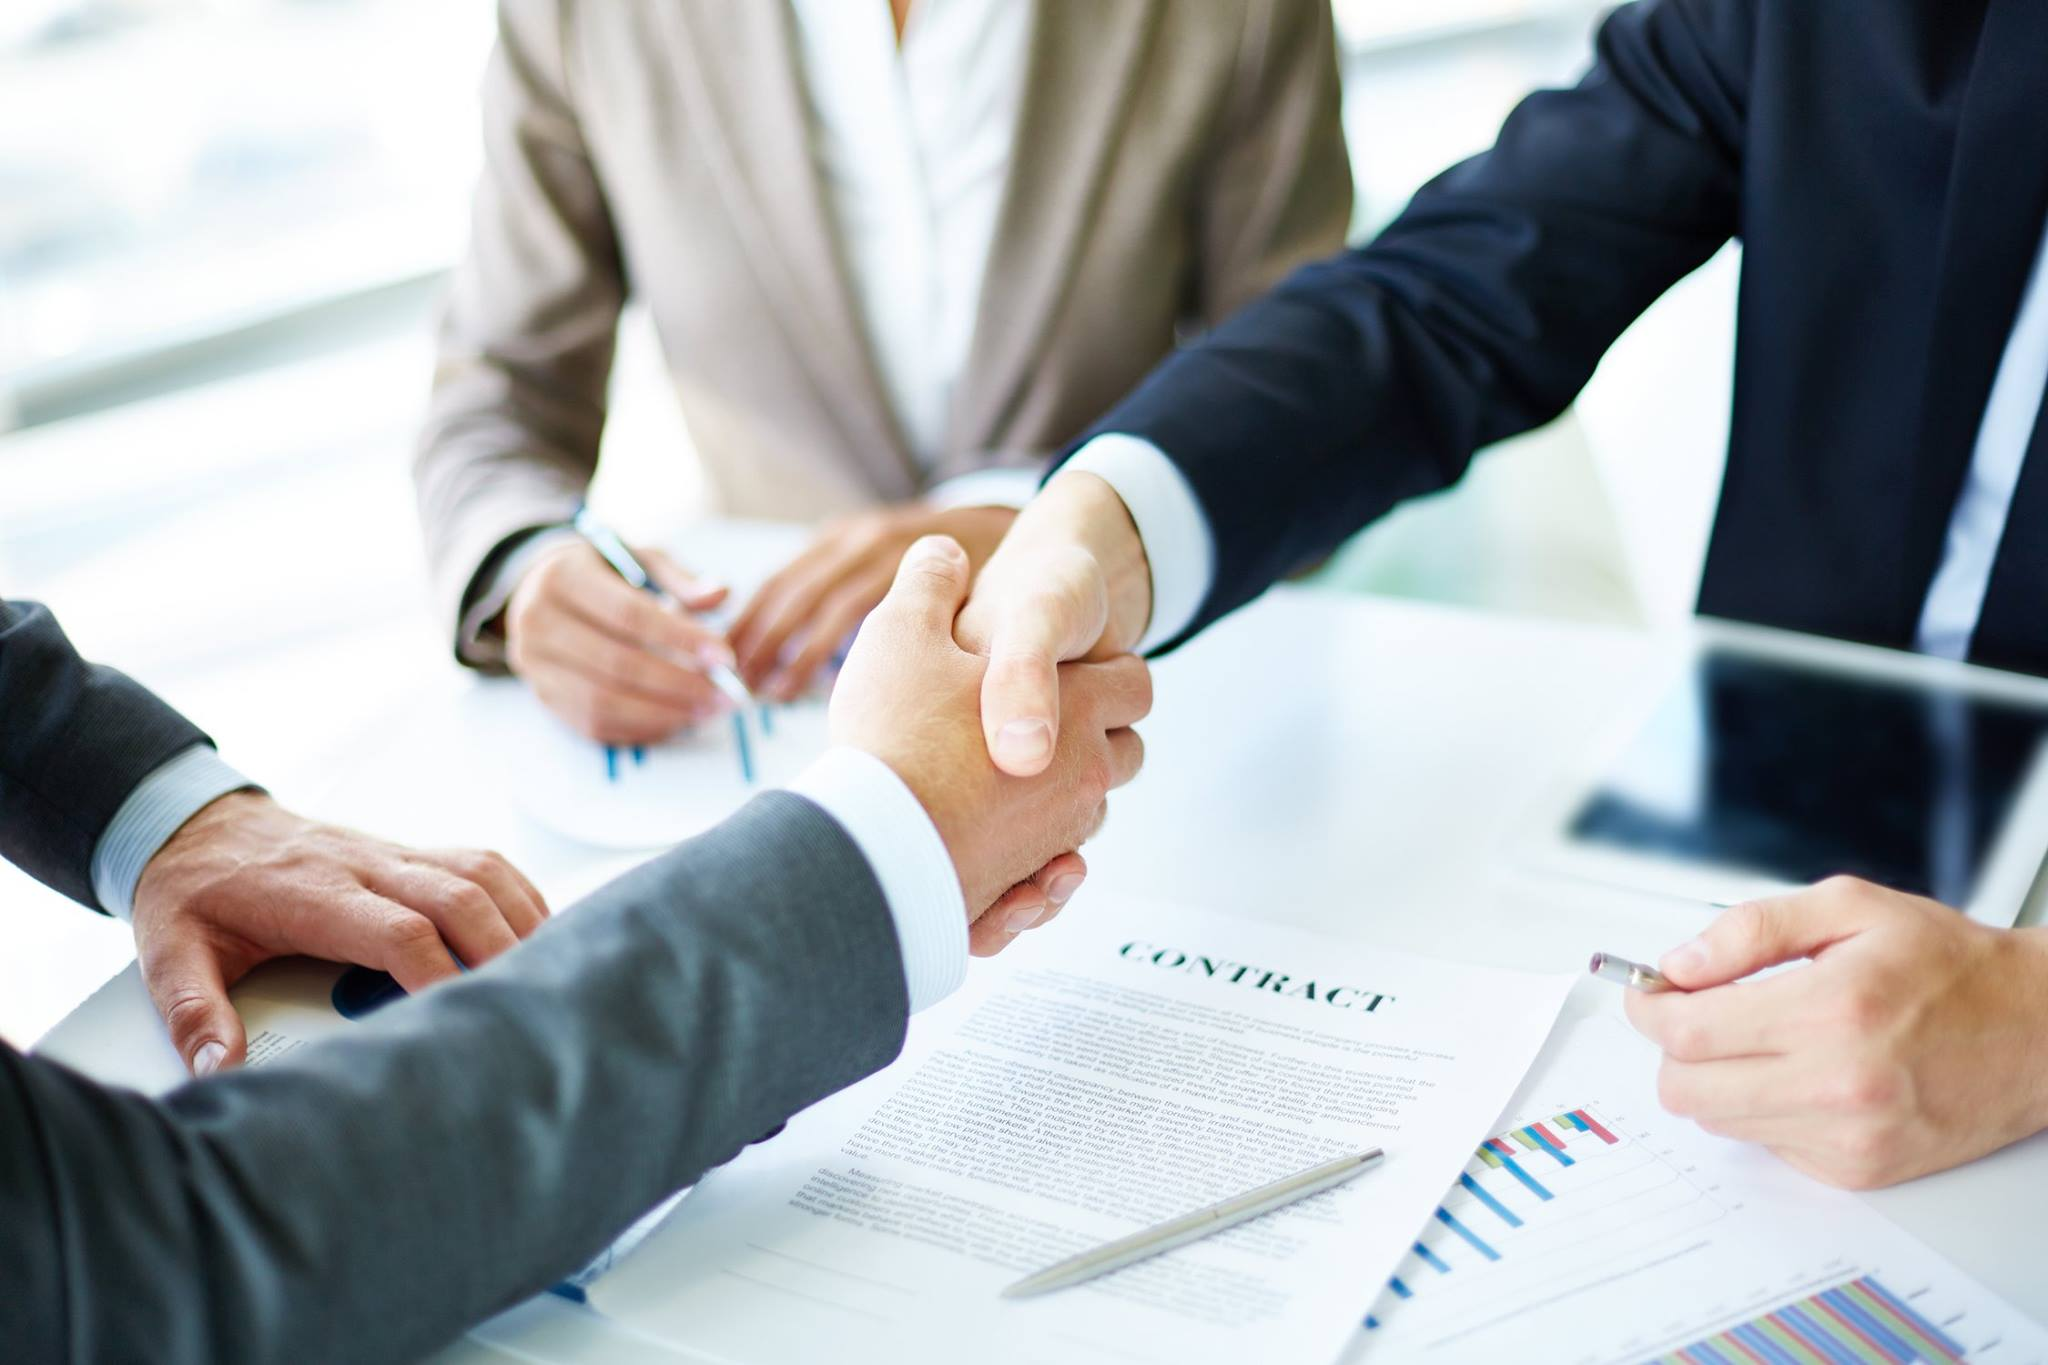 <b>JV PARTNERSHIPS </b><br /> We buy, refurb and sell or build property portfolios for our clients. Through joint venture partnerships we deliver substantial profits for cash rich, time poor clients.